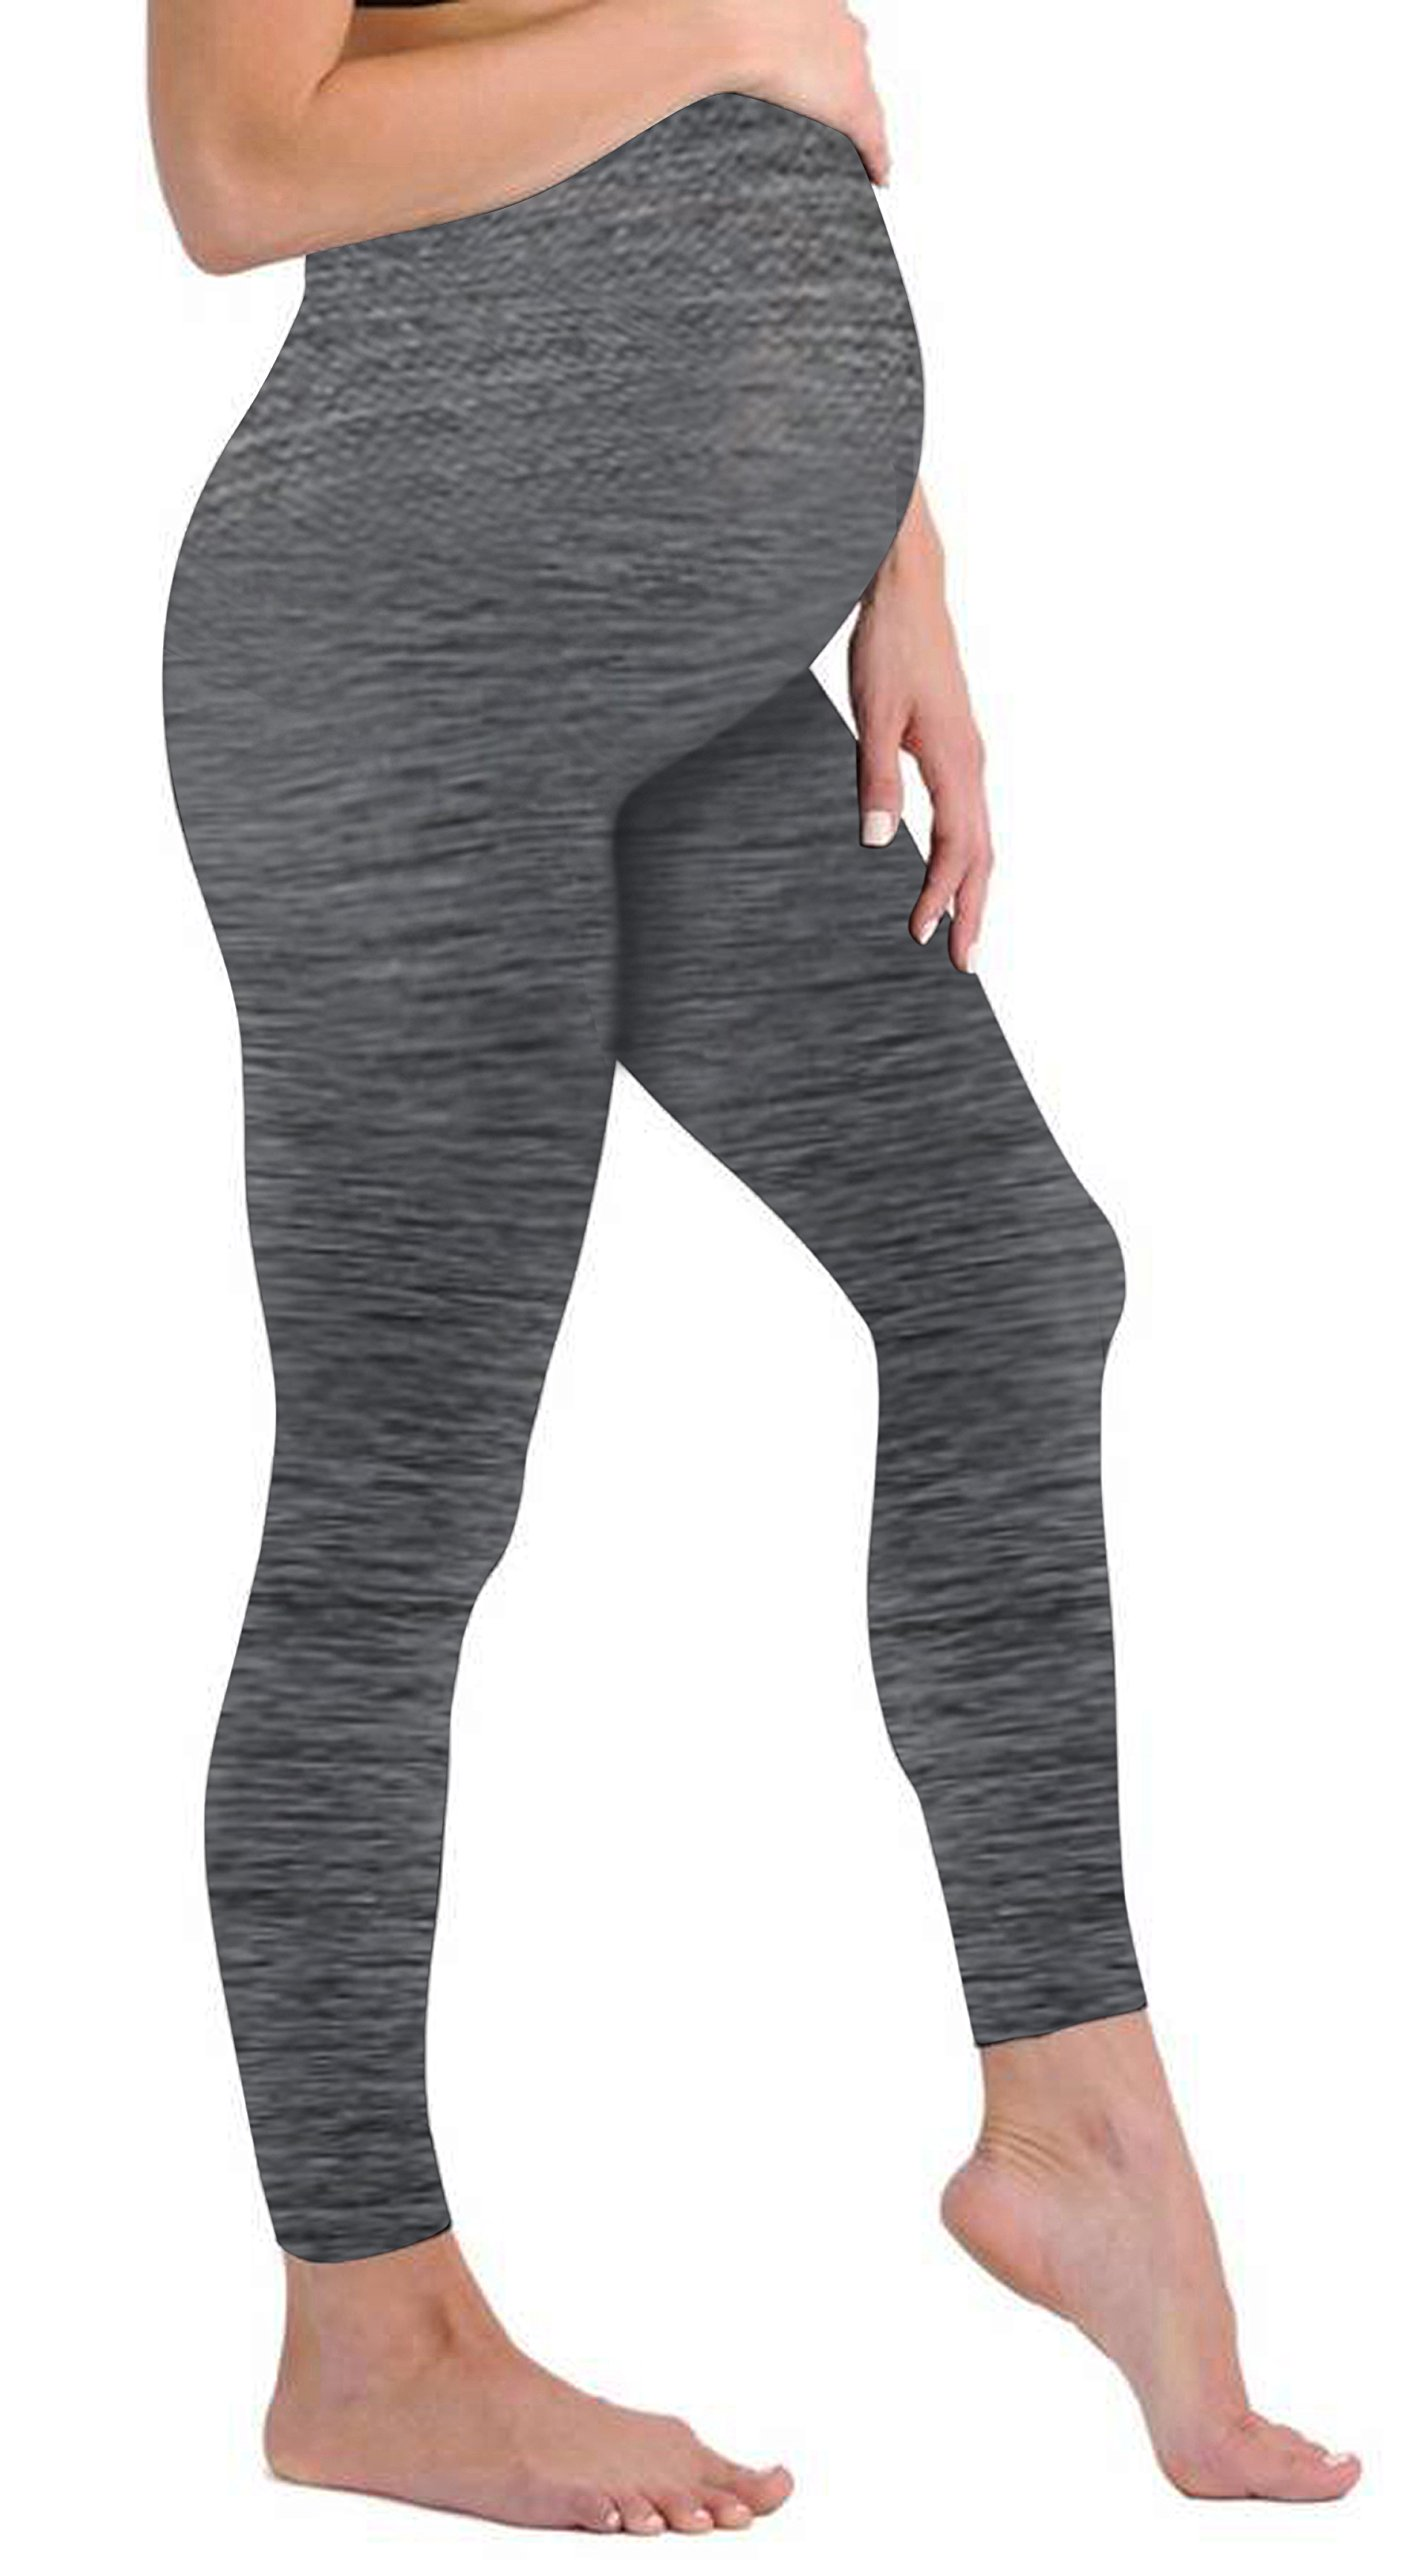 Stretch Maternity Leggings Seamless Solid Color